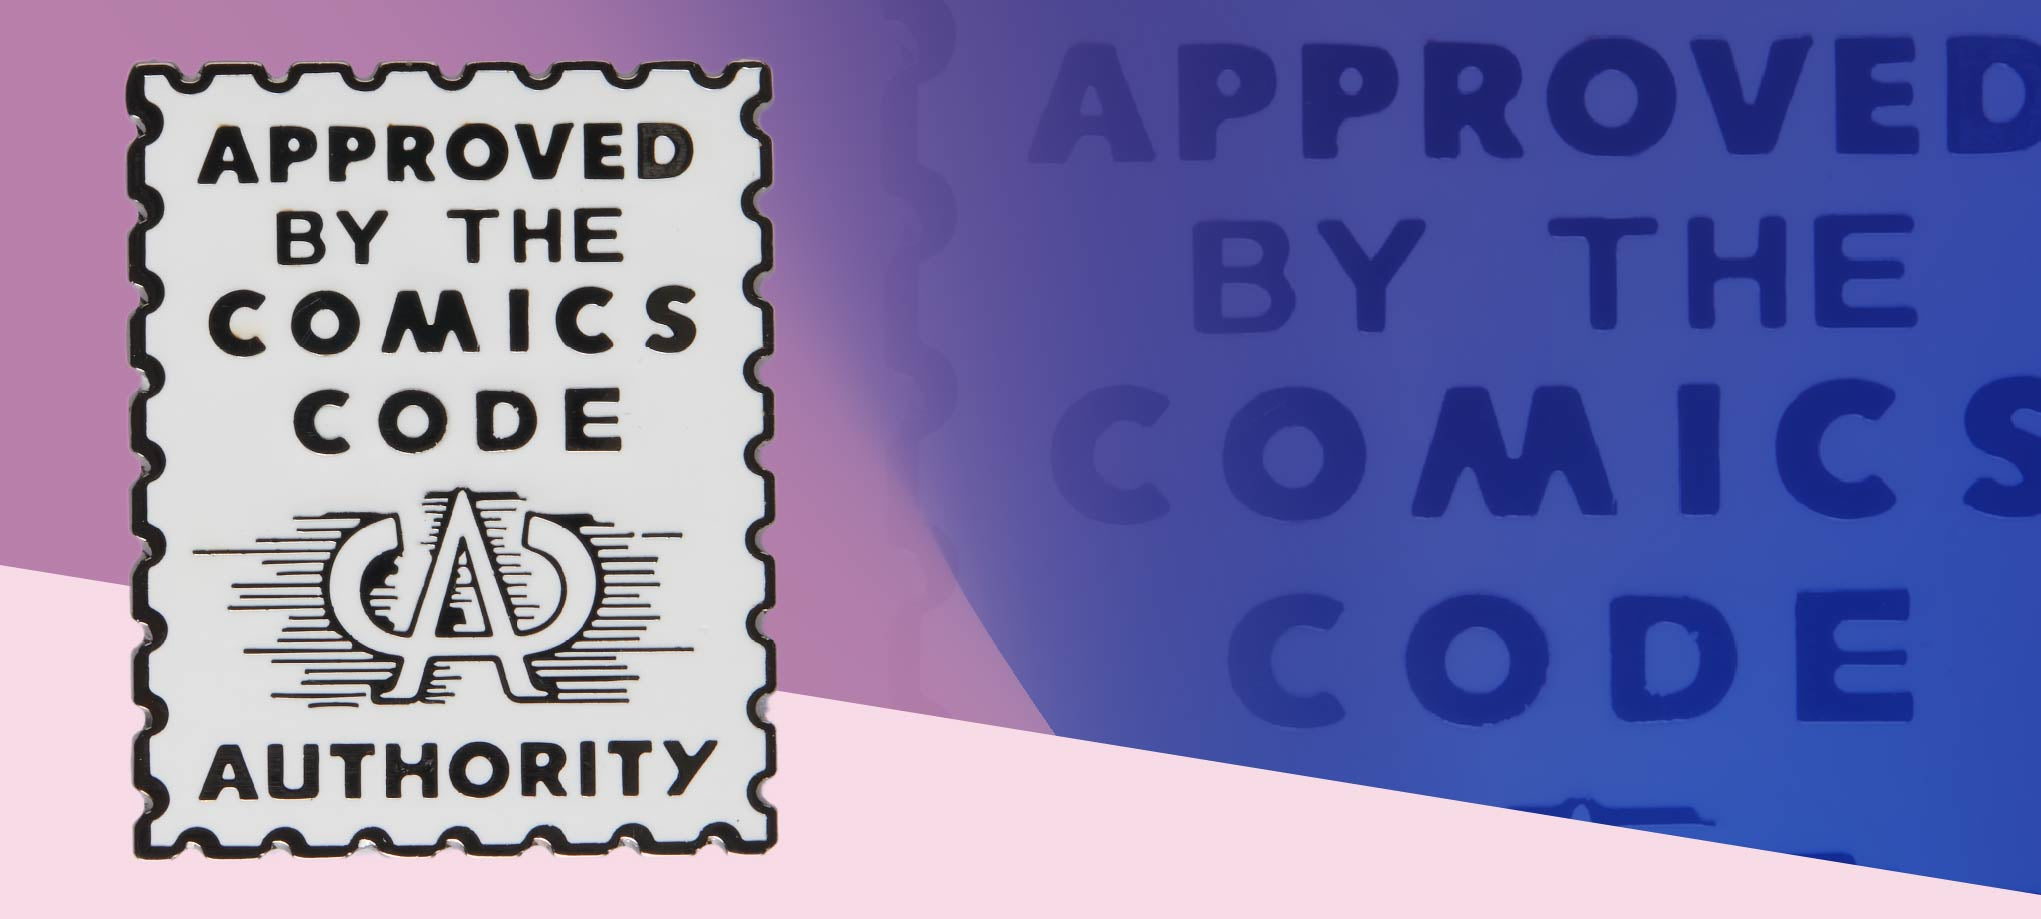 Approved Comic Pin Pin Data Crew | DataCrew